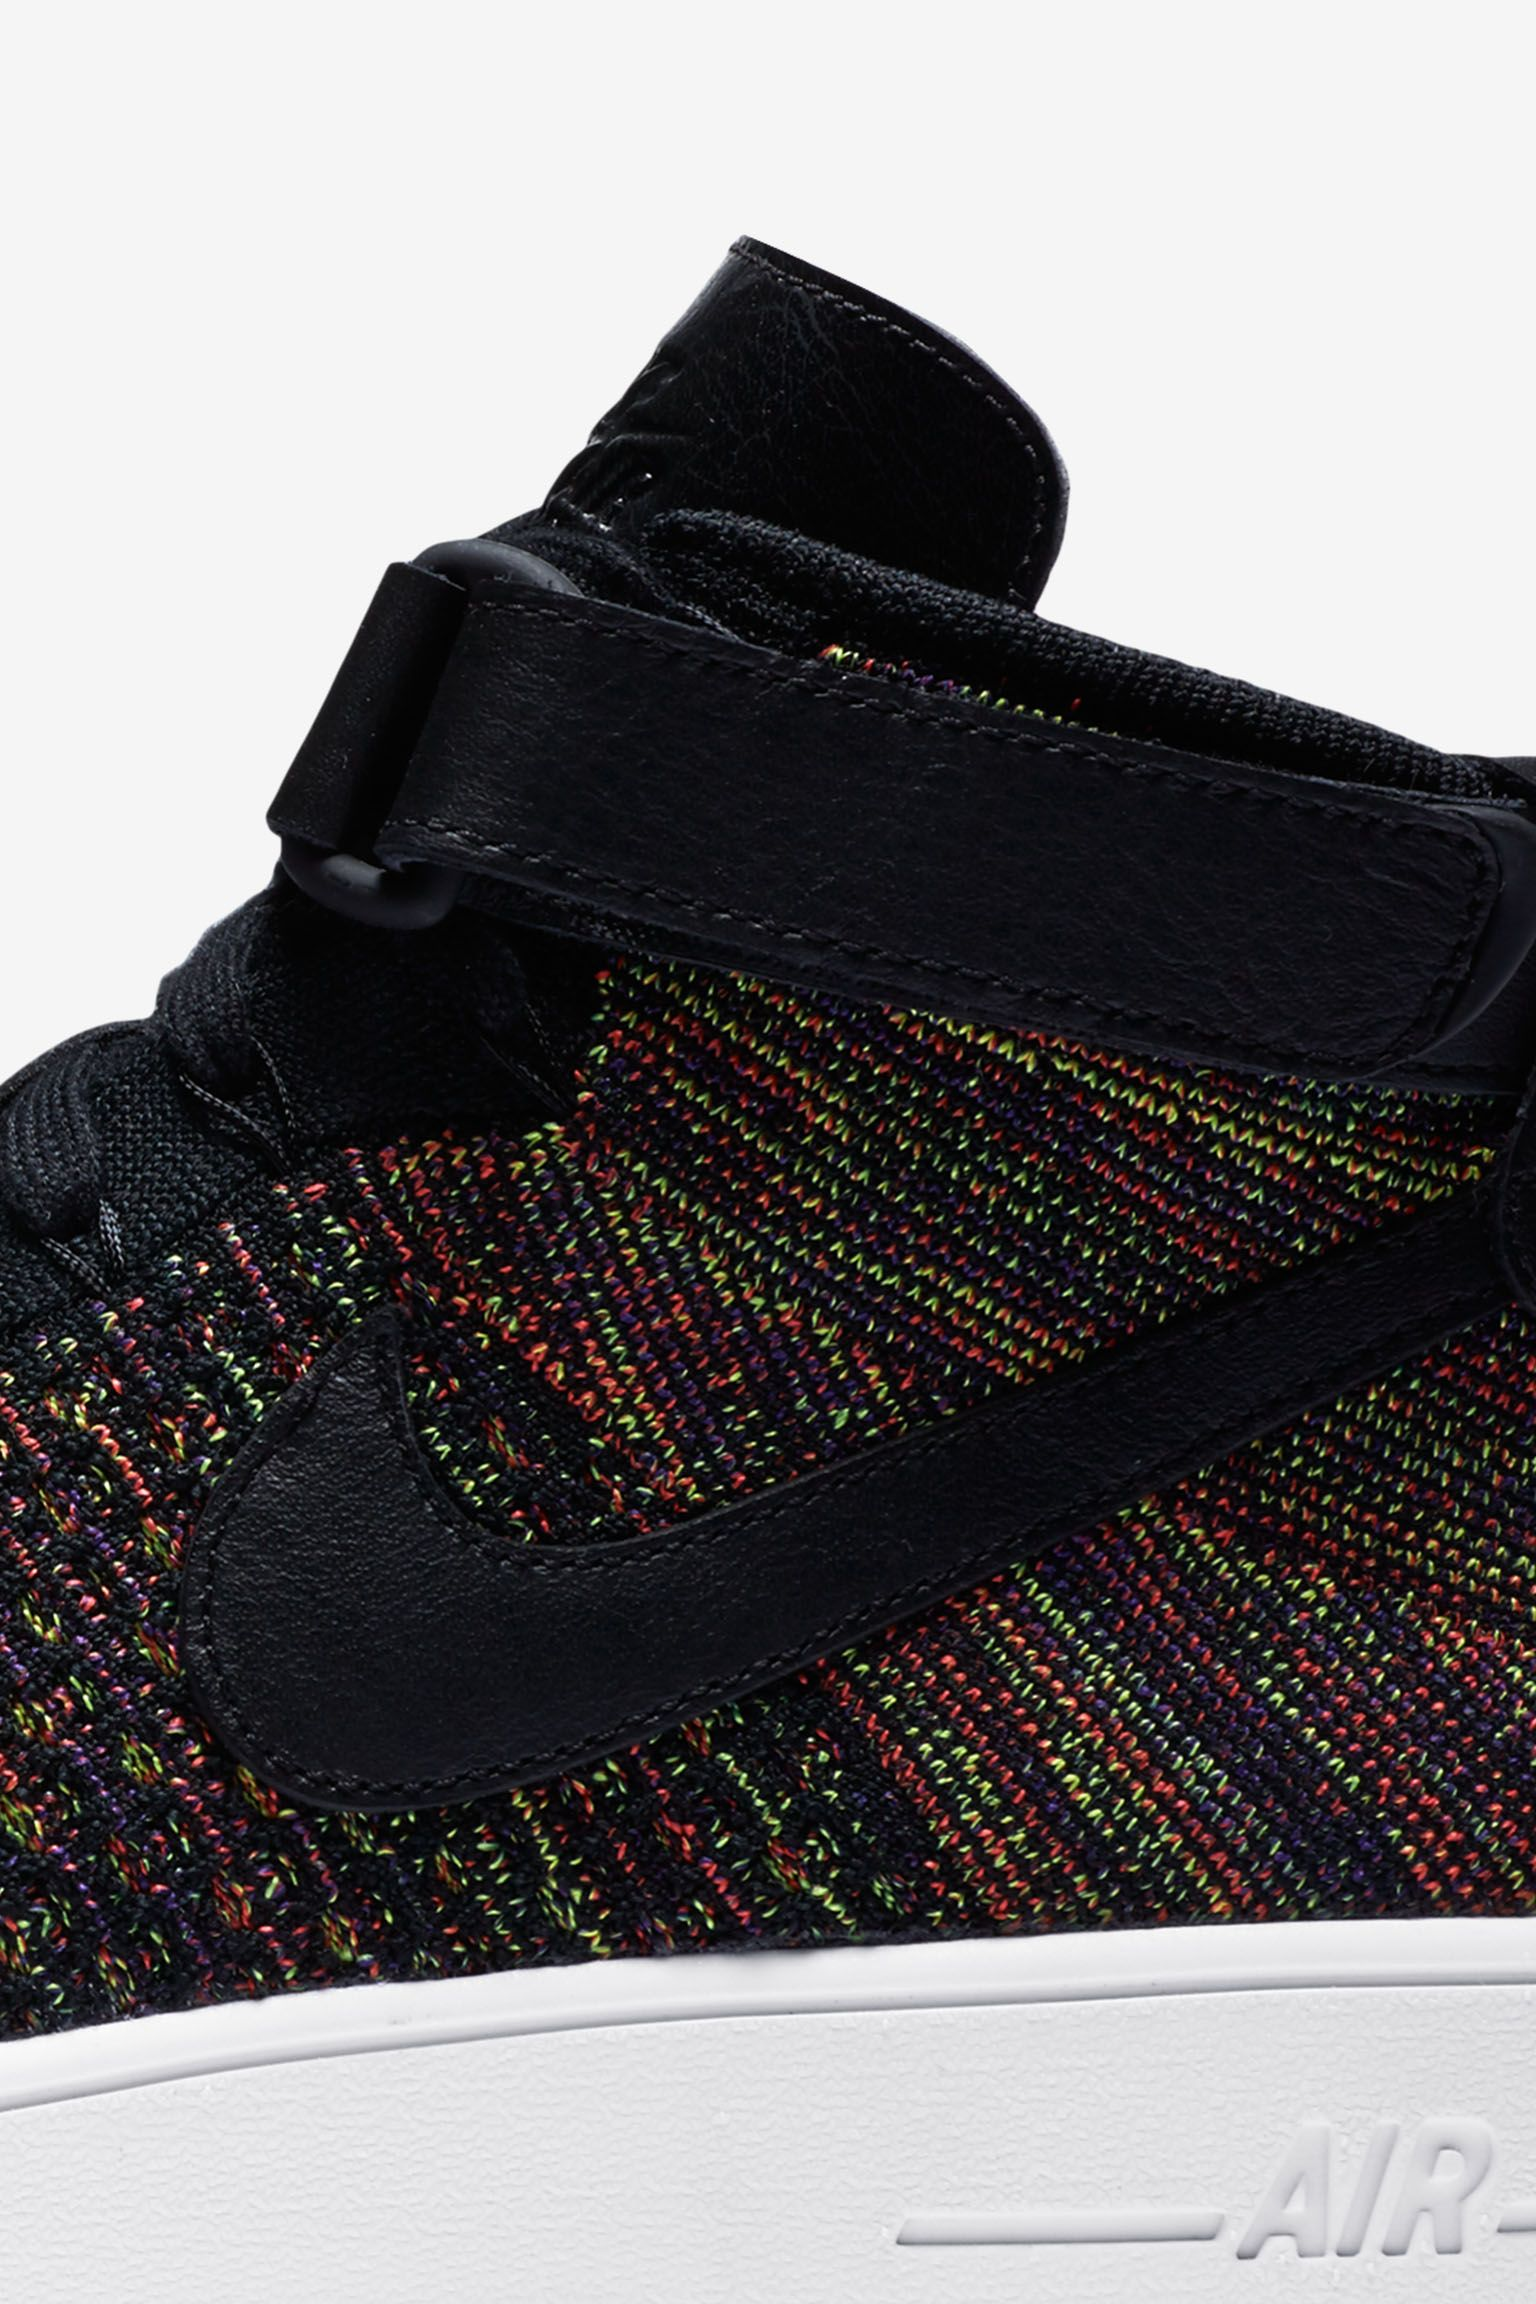 Nike Air Force 1 Ultra Flyknit Mid 'Multicolor 2.0' Release Date